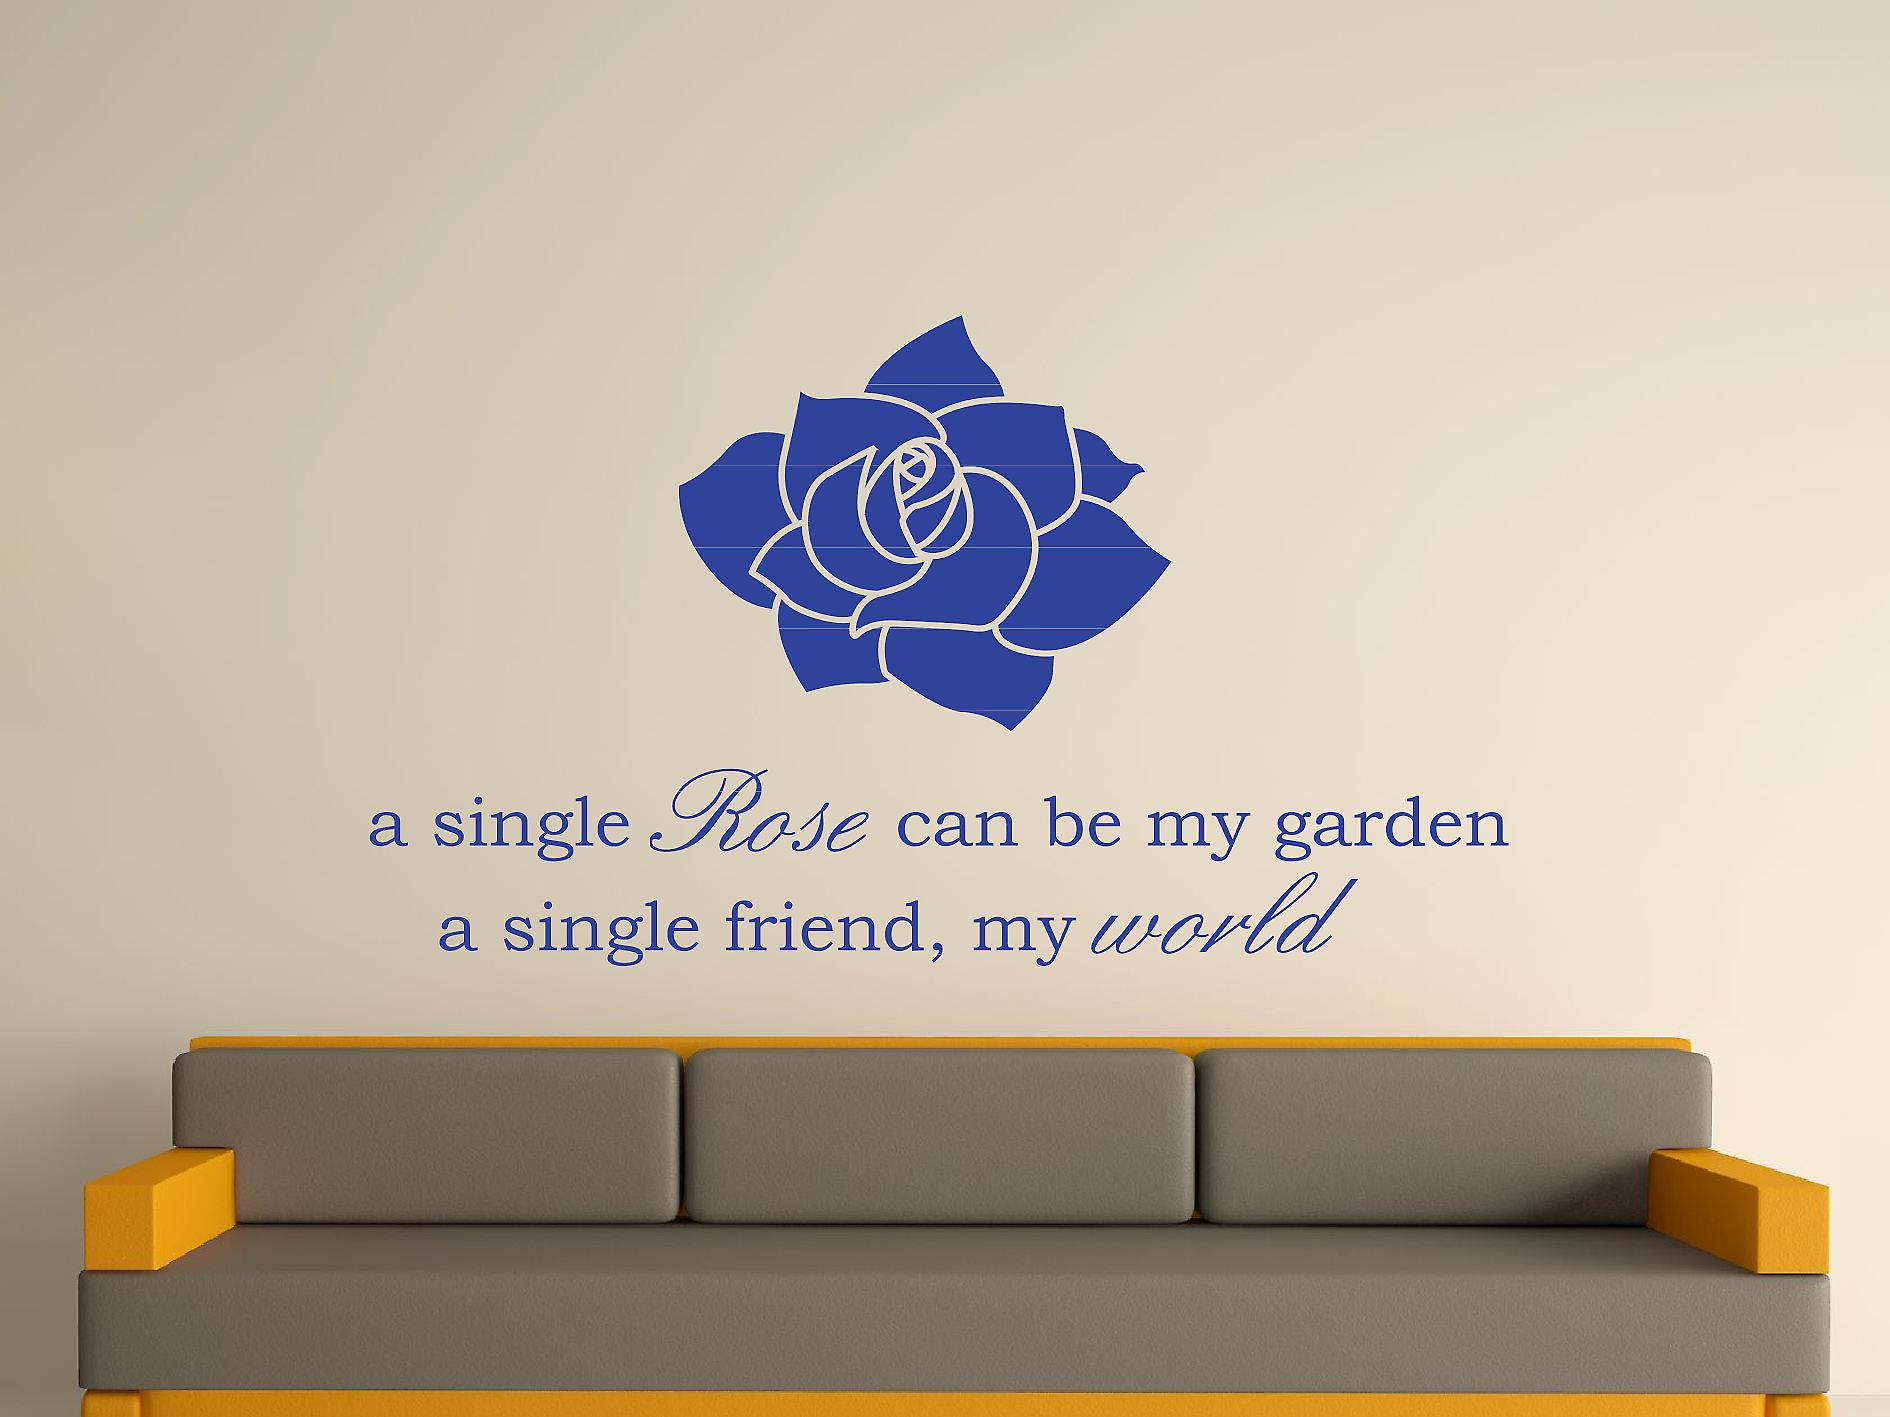 Un solo color de rosa de Wall Sticker Art - azul brillante